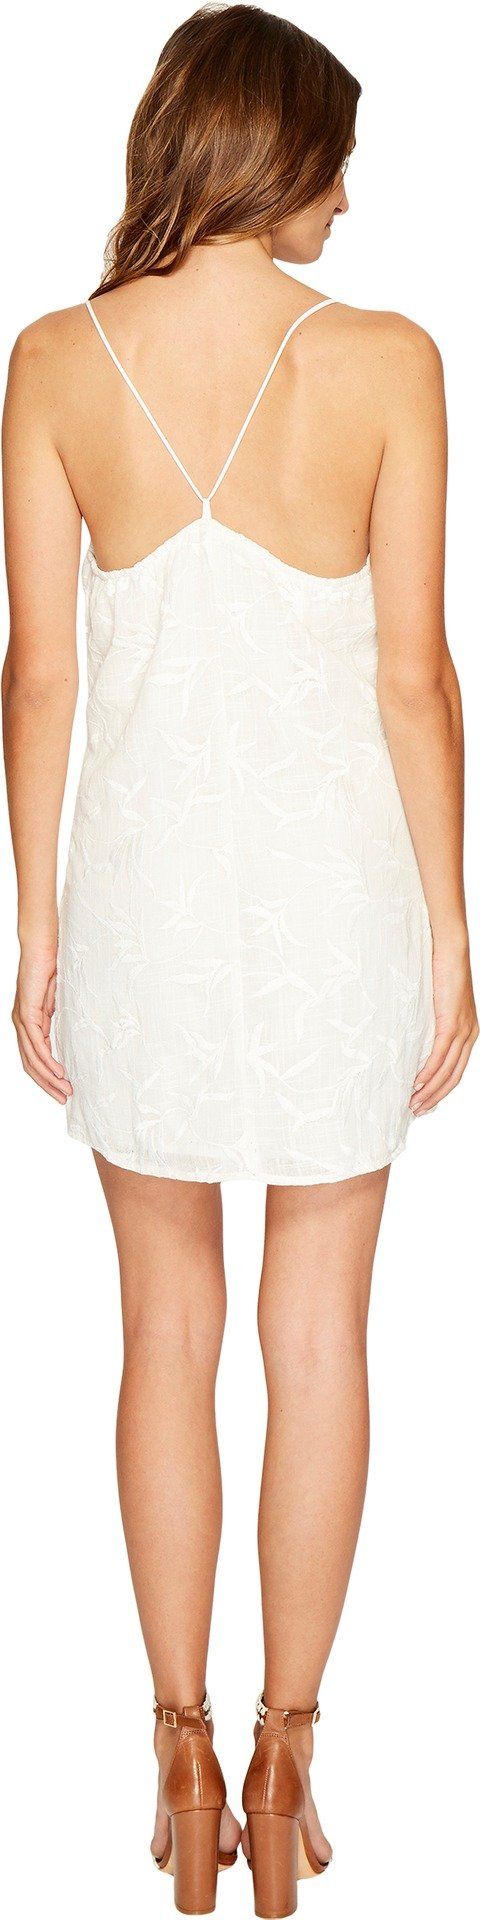 New Lucy Love Women's Feels Good Dress Rayon White